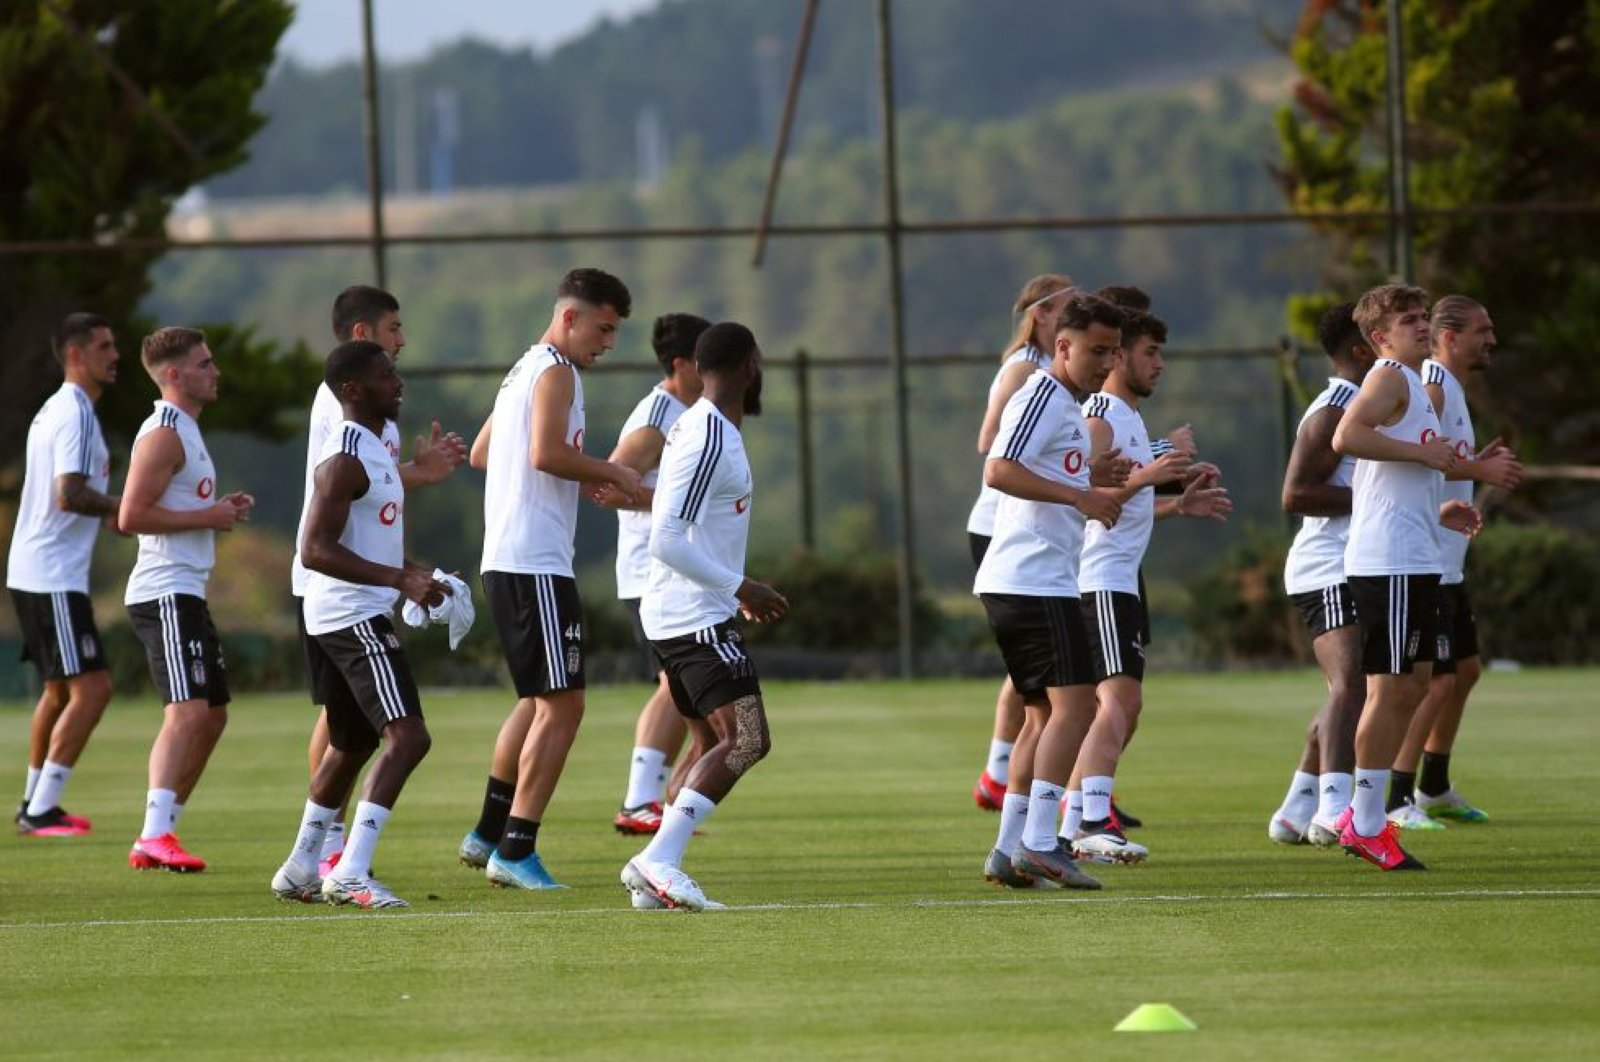 Beşiktaş players during a training session in Nevzat Demir facilities in Istanbul, Turkey, June 25, 2020. (DHA Photo)